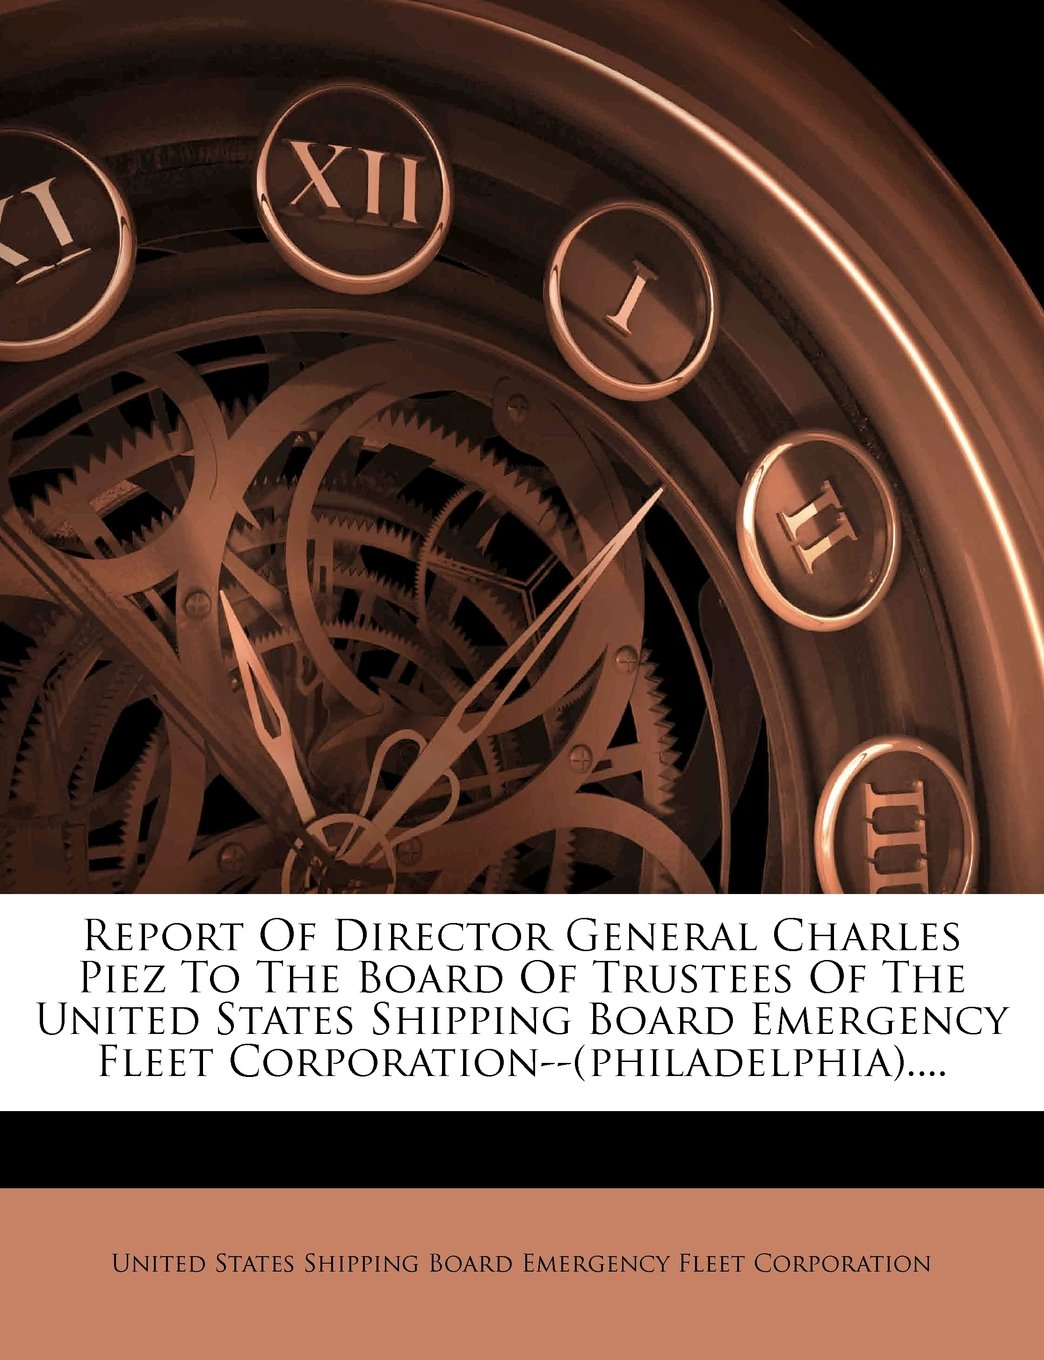 Download Report Of Director General Charles Piez To The Board Of Trustees Of The United States Shipping Board Emergency Fleet Corporation--(philadelphia).... PDF